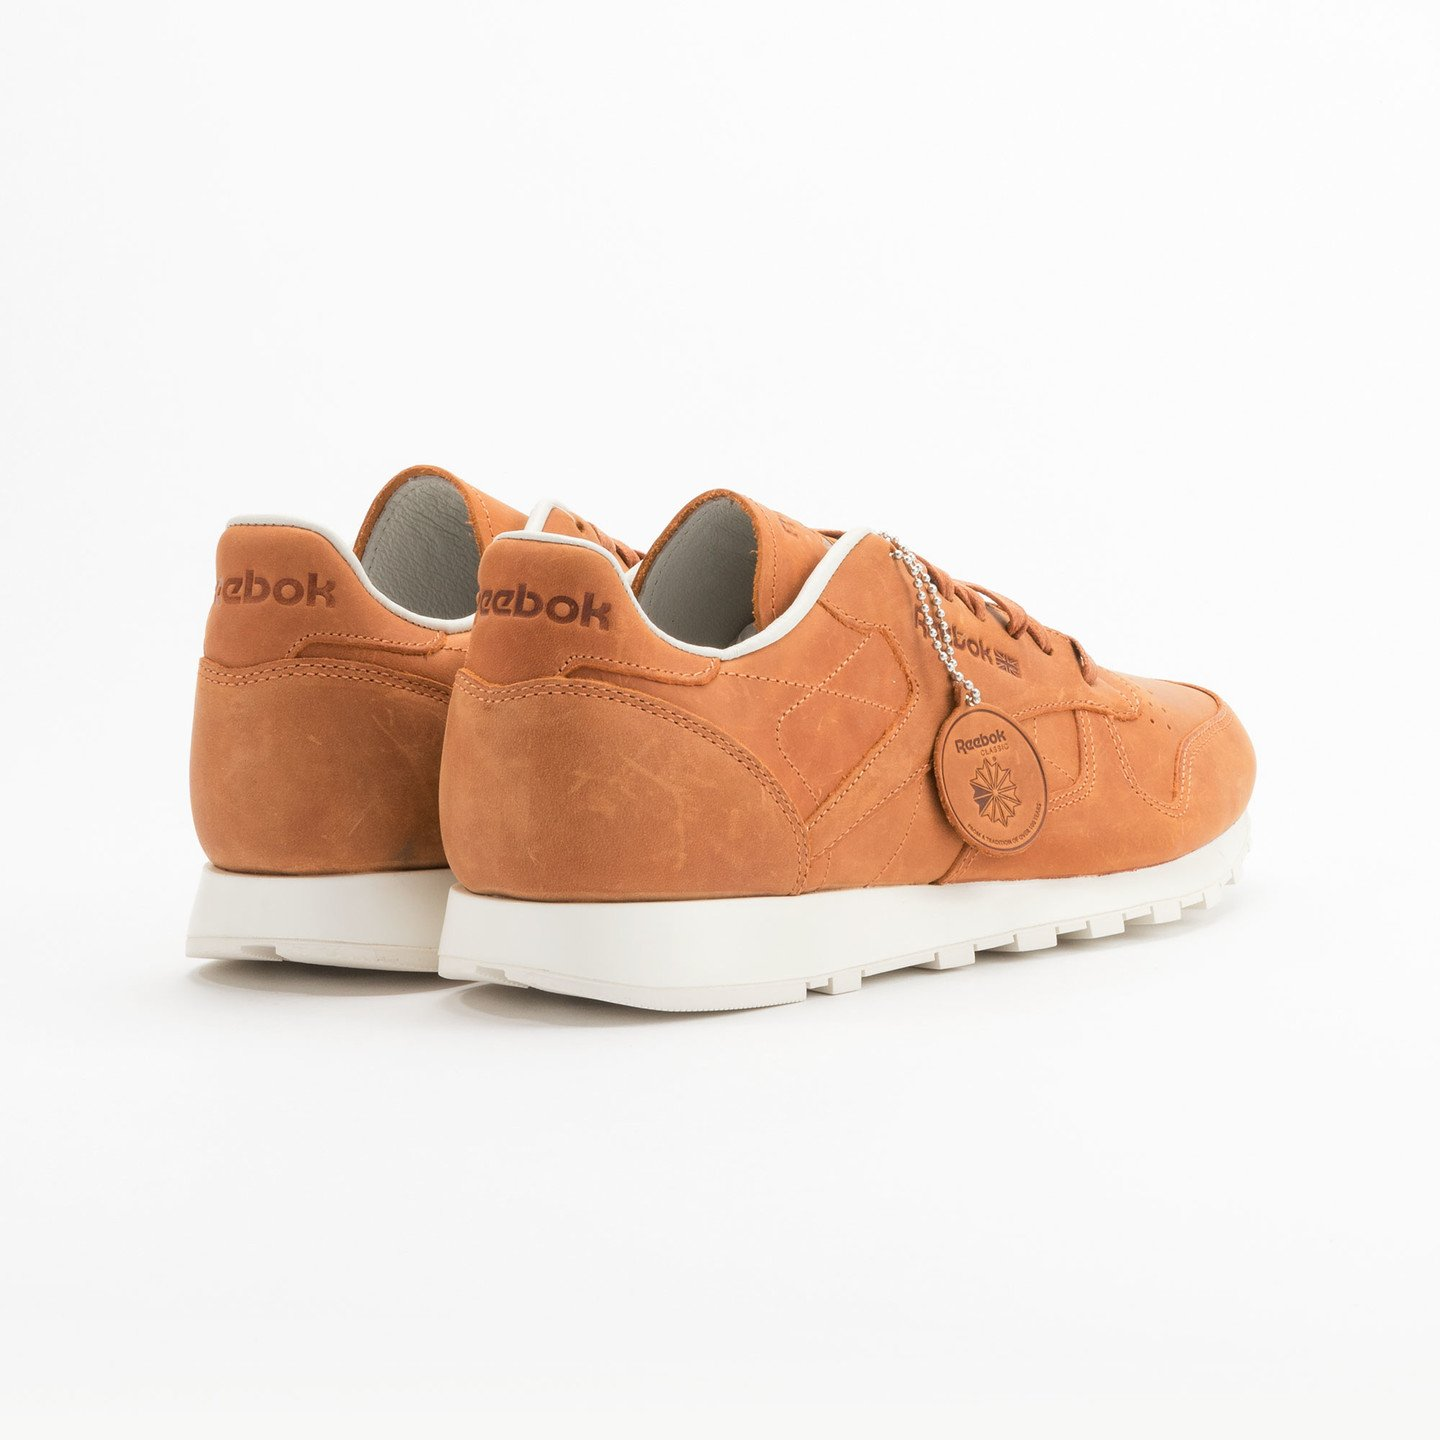 Reebok Classic Leather Lux PW Rusty / Beige / Chalk V68686-44